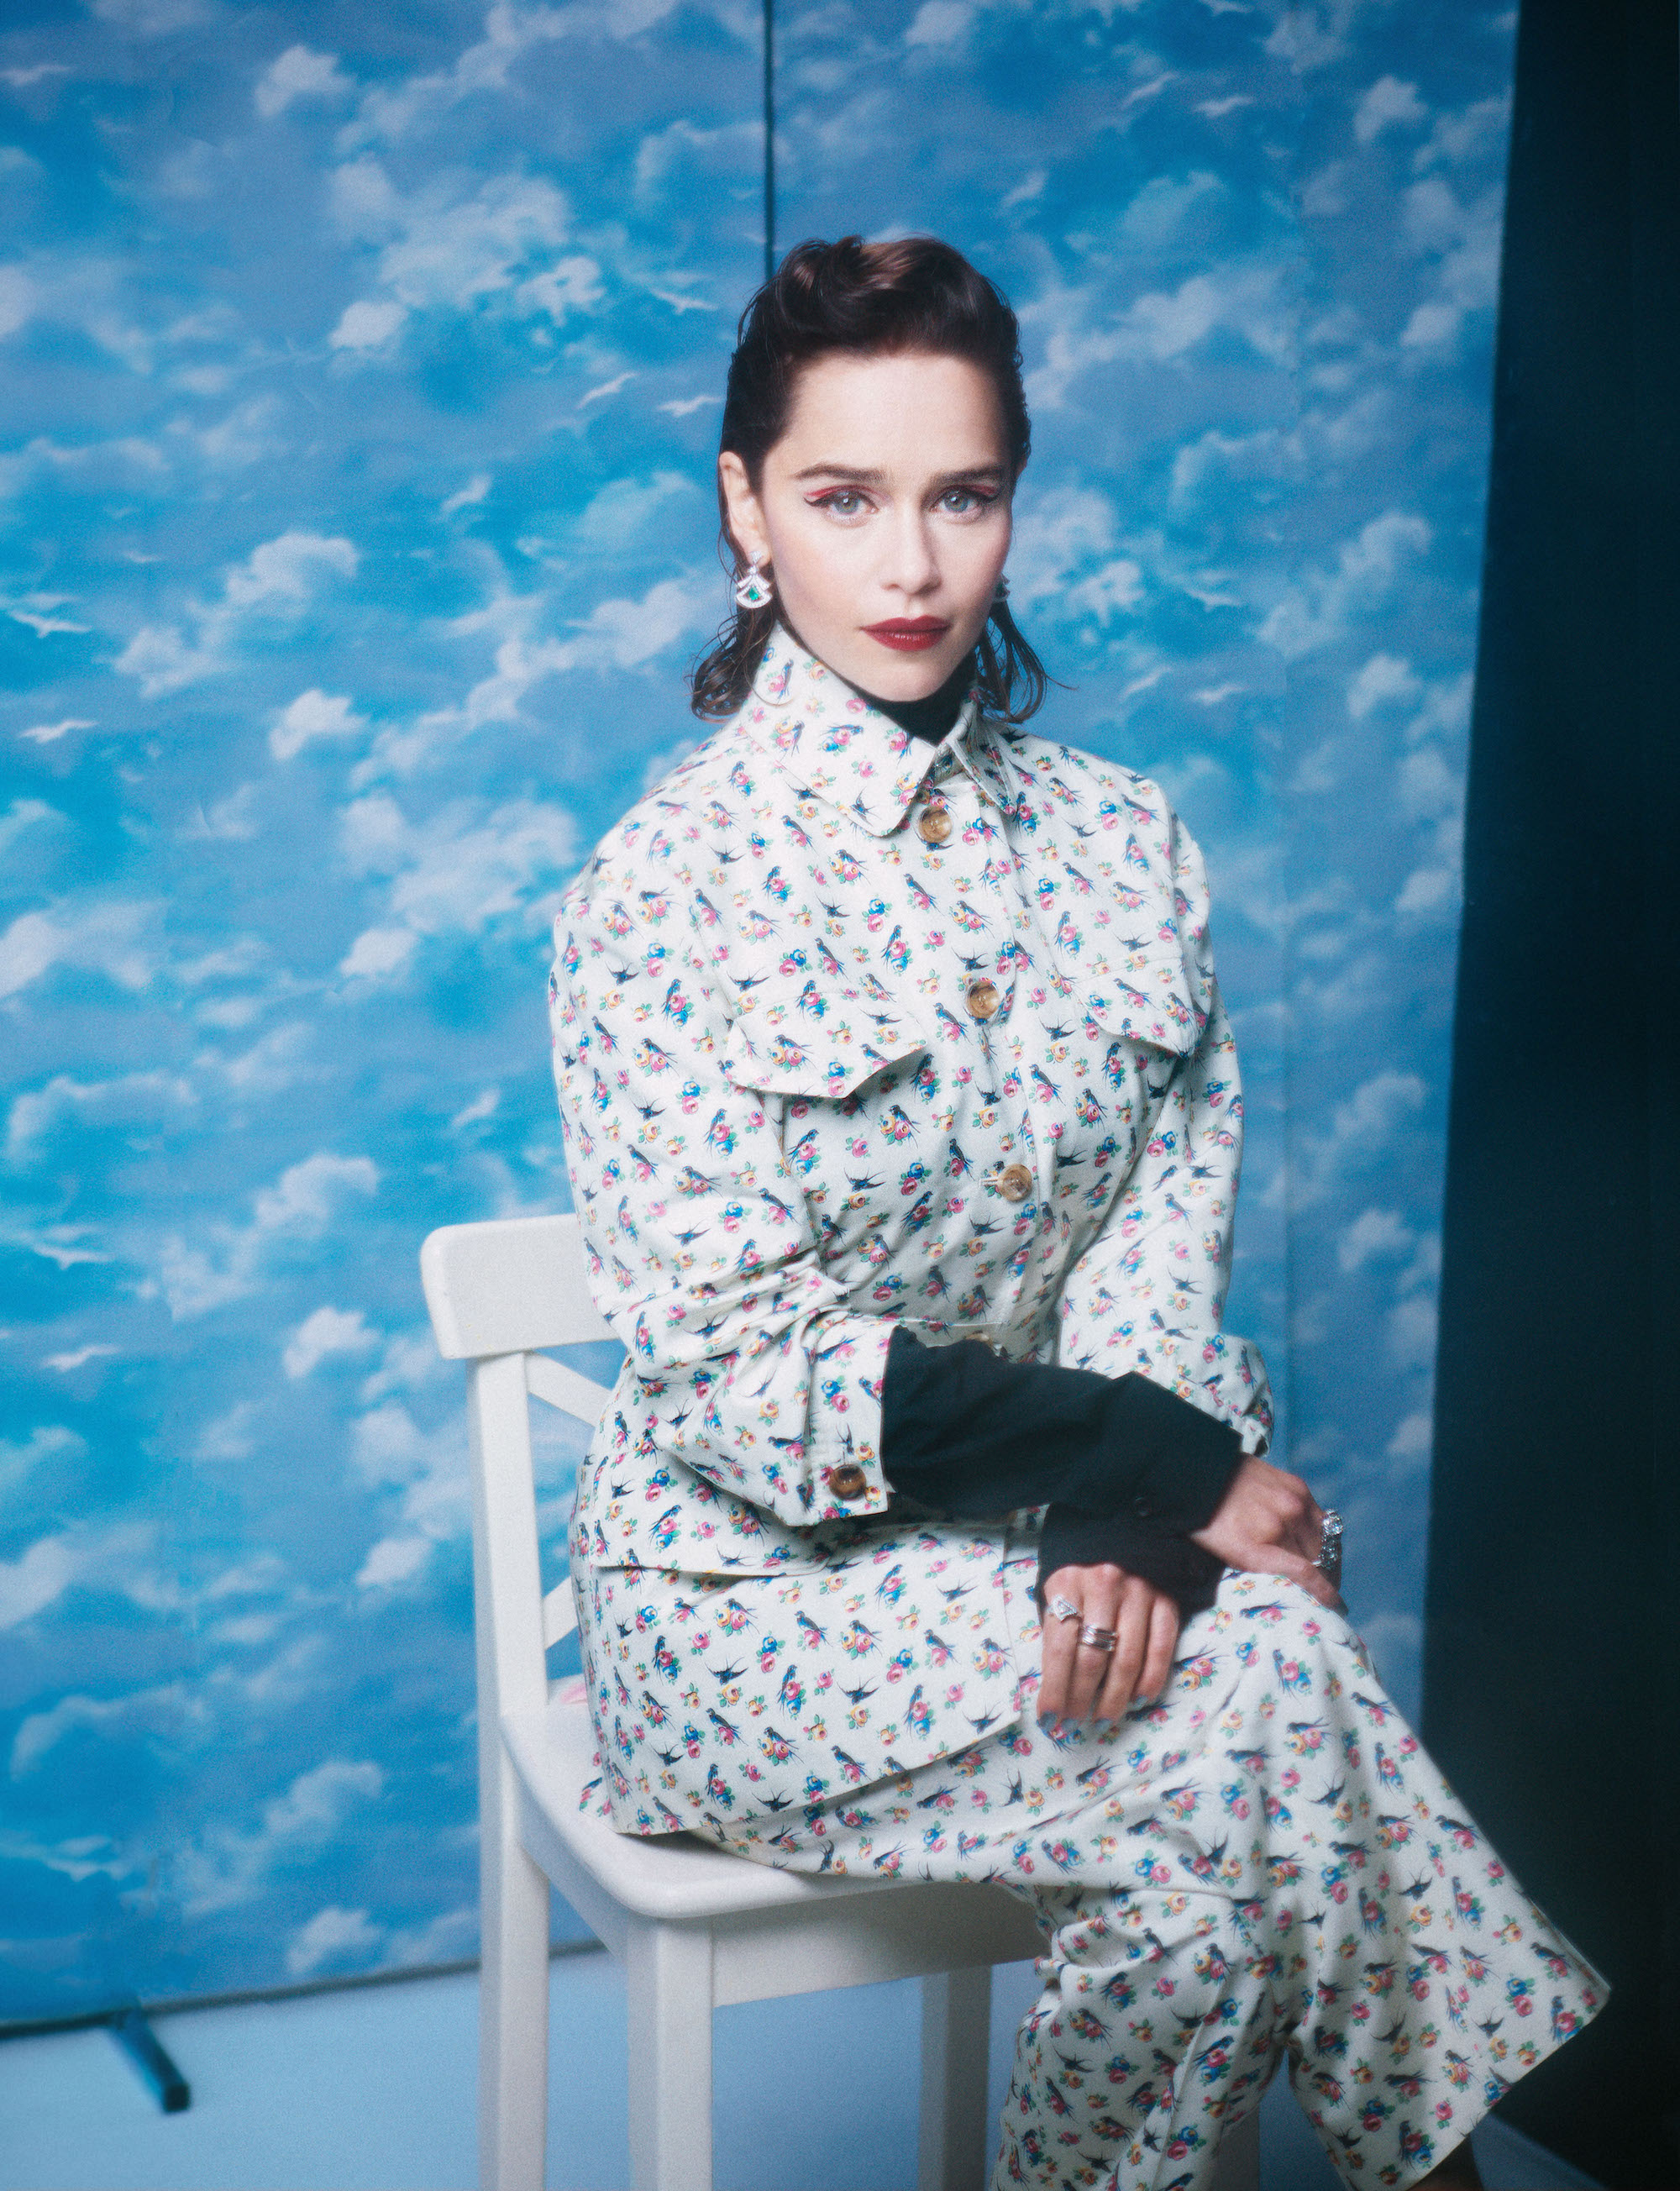 Emilia Clarke cover interview in Wonderland winter issue clouds